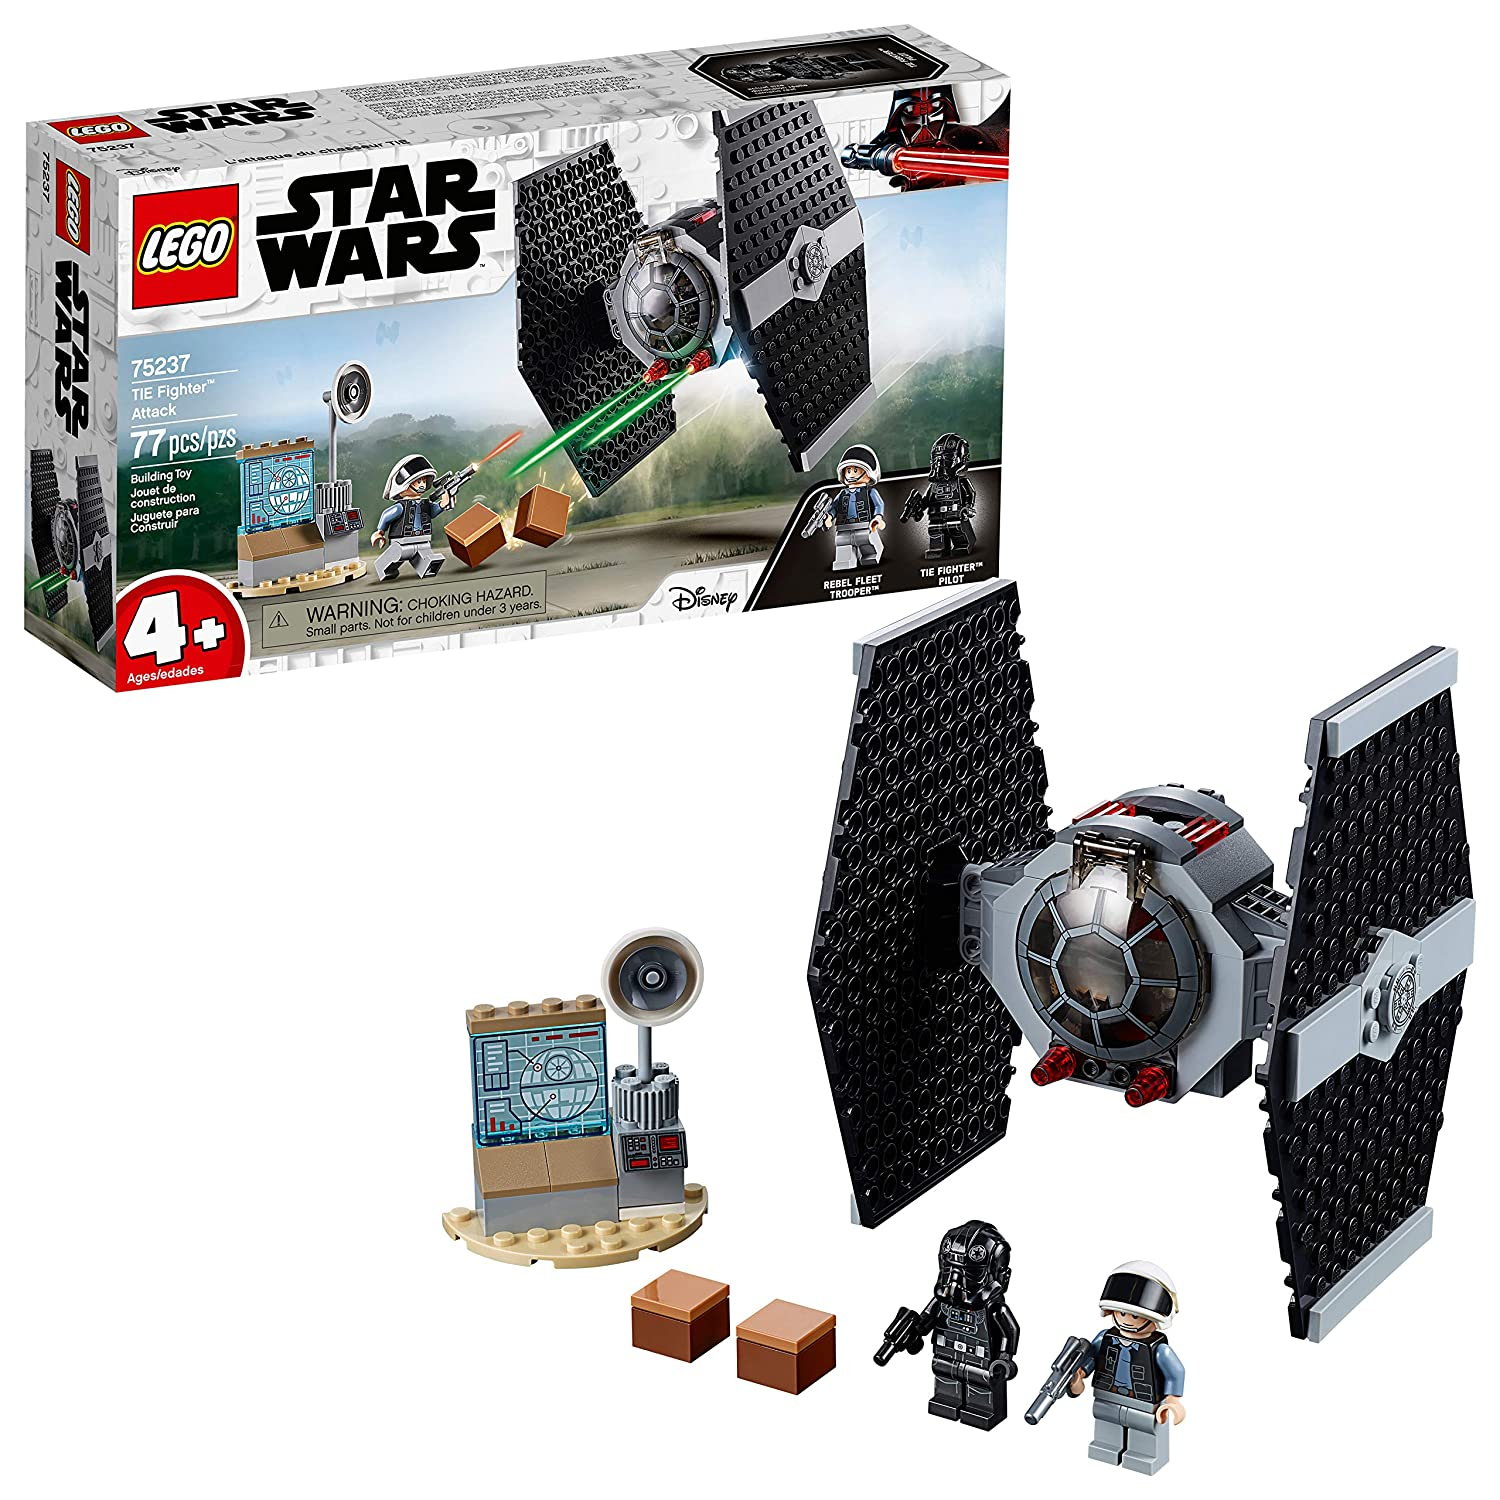 LEGO Star Wars TIE Fighter Attack 75237 4+ Building Kit, 2019 (77 Pieces)